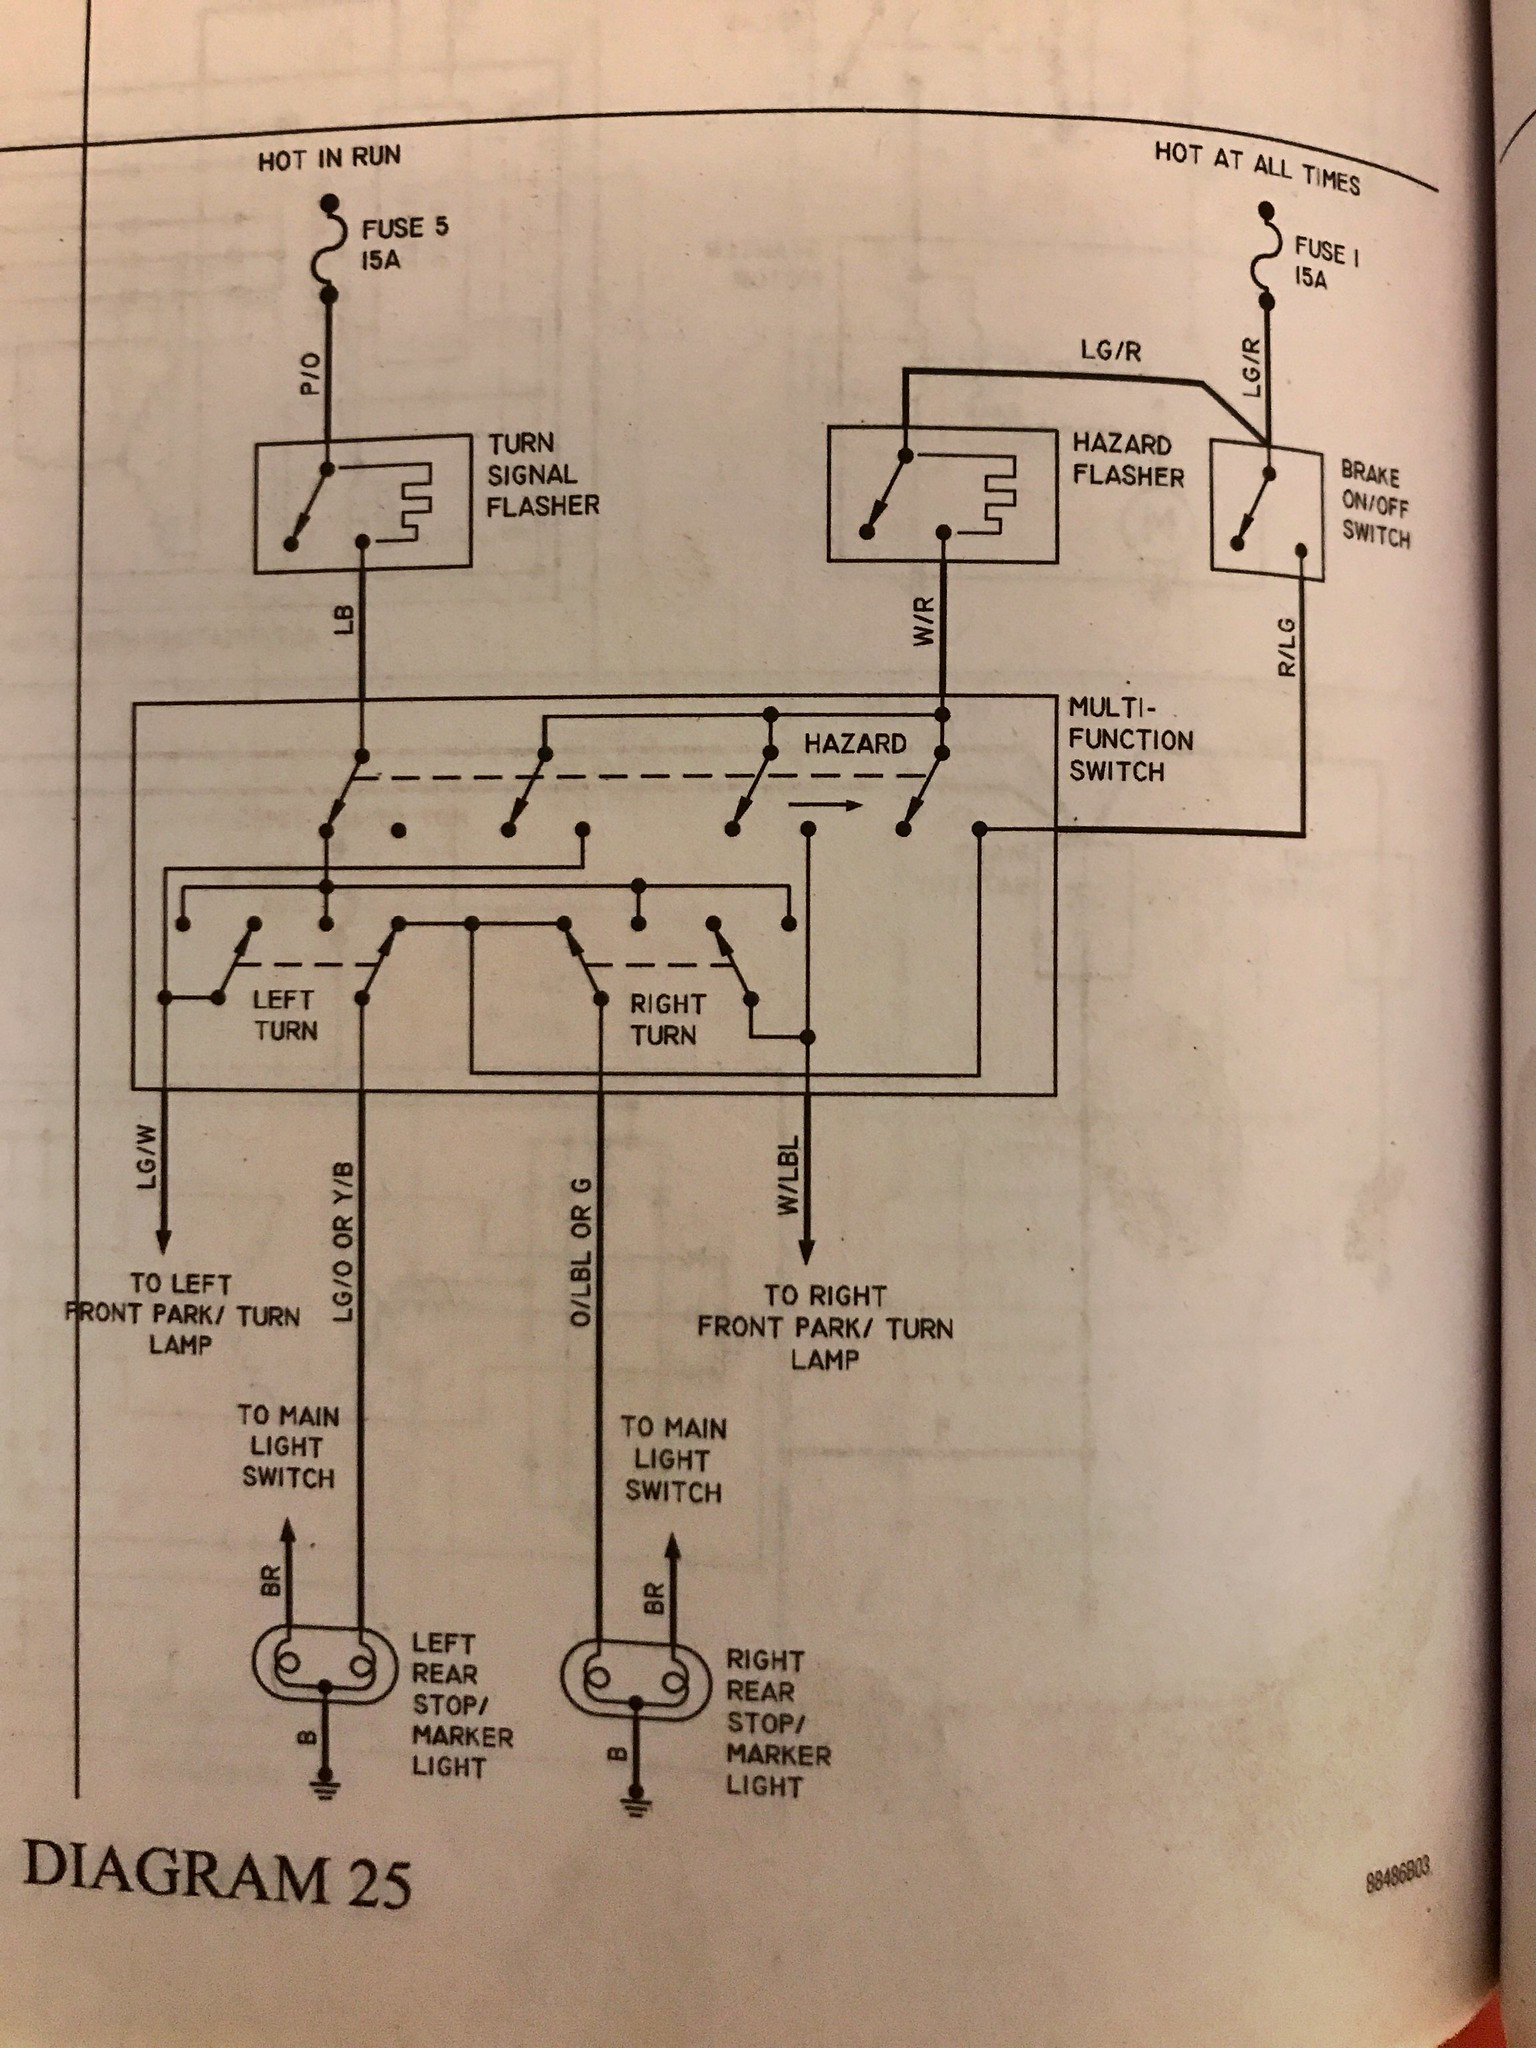 350 Truck 1967 Exterior Lights And Turn Signals Wiring Diagram